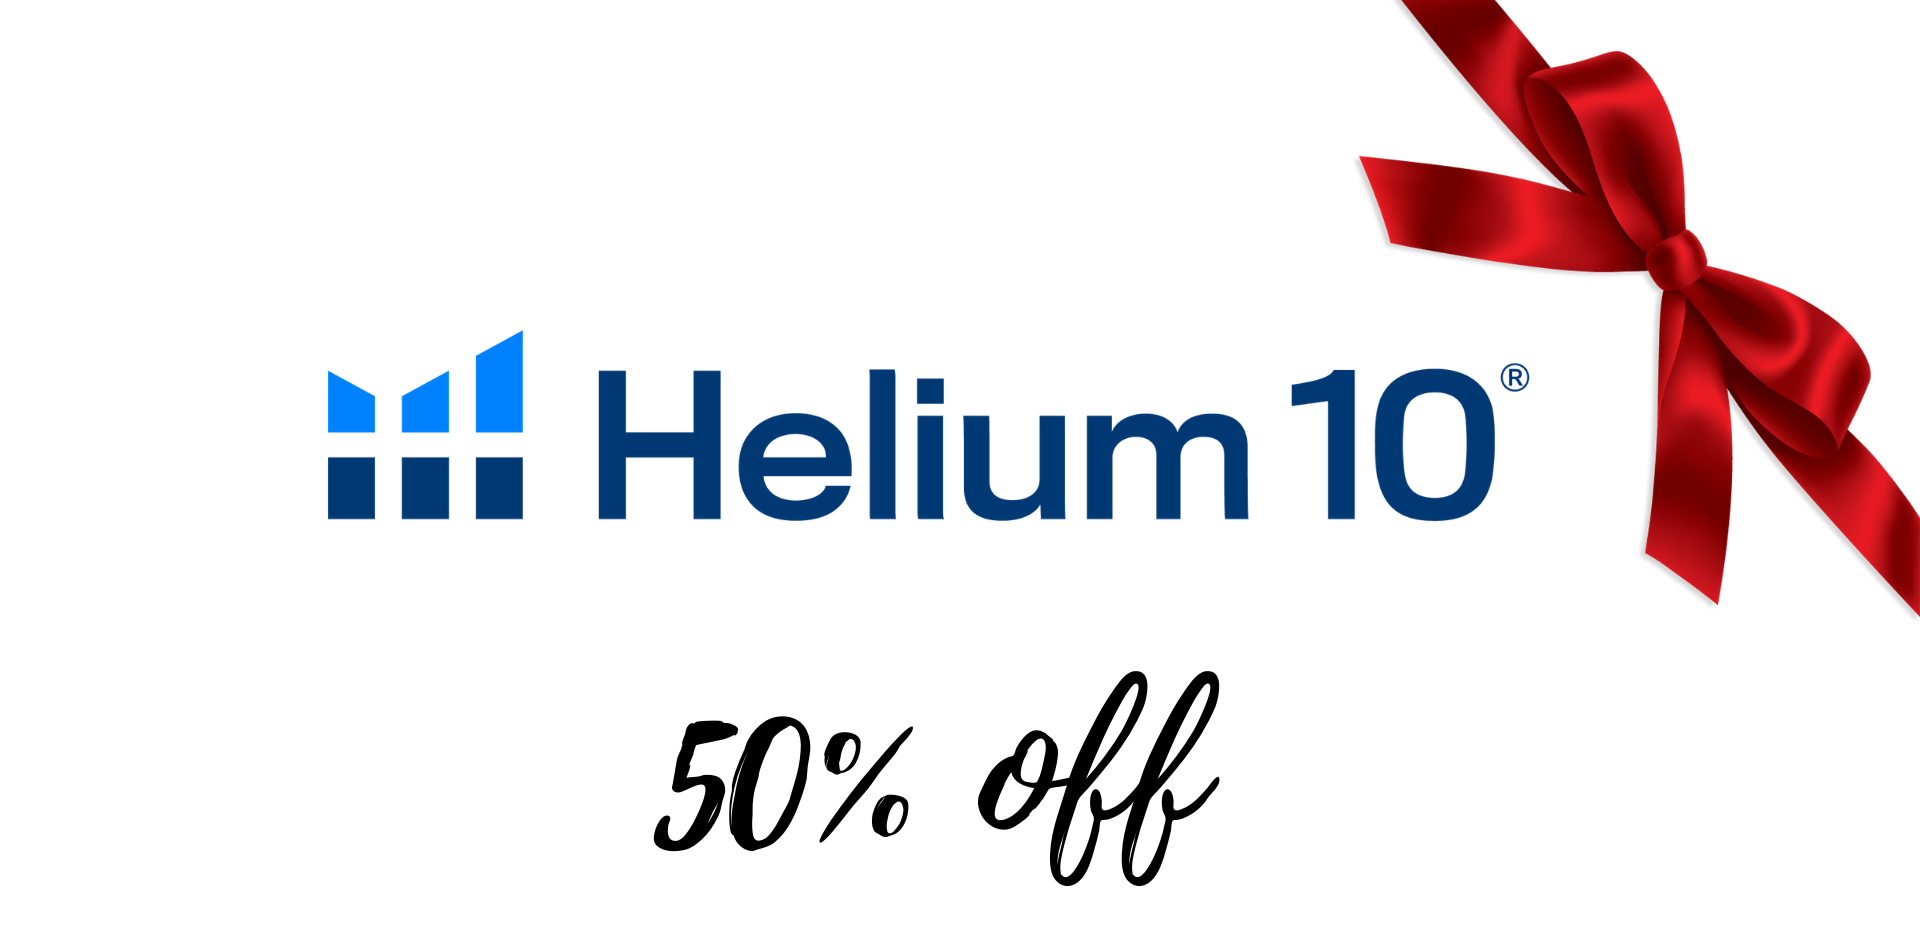 Does Helium 10 Work In Australia